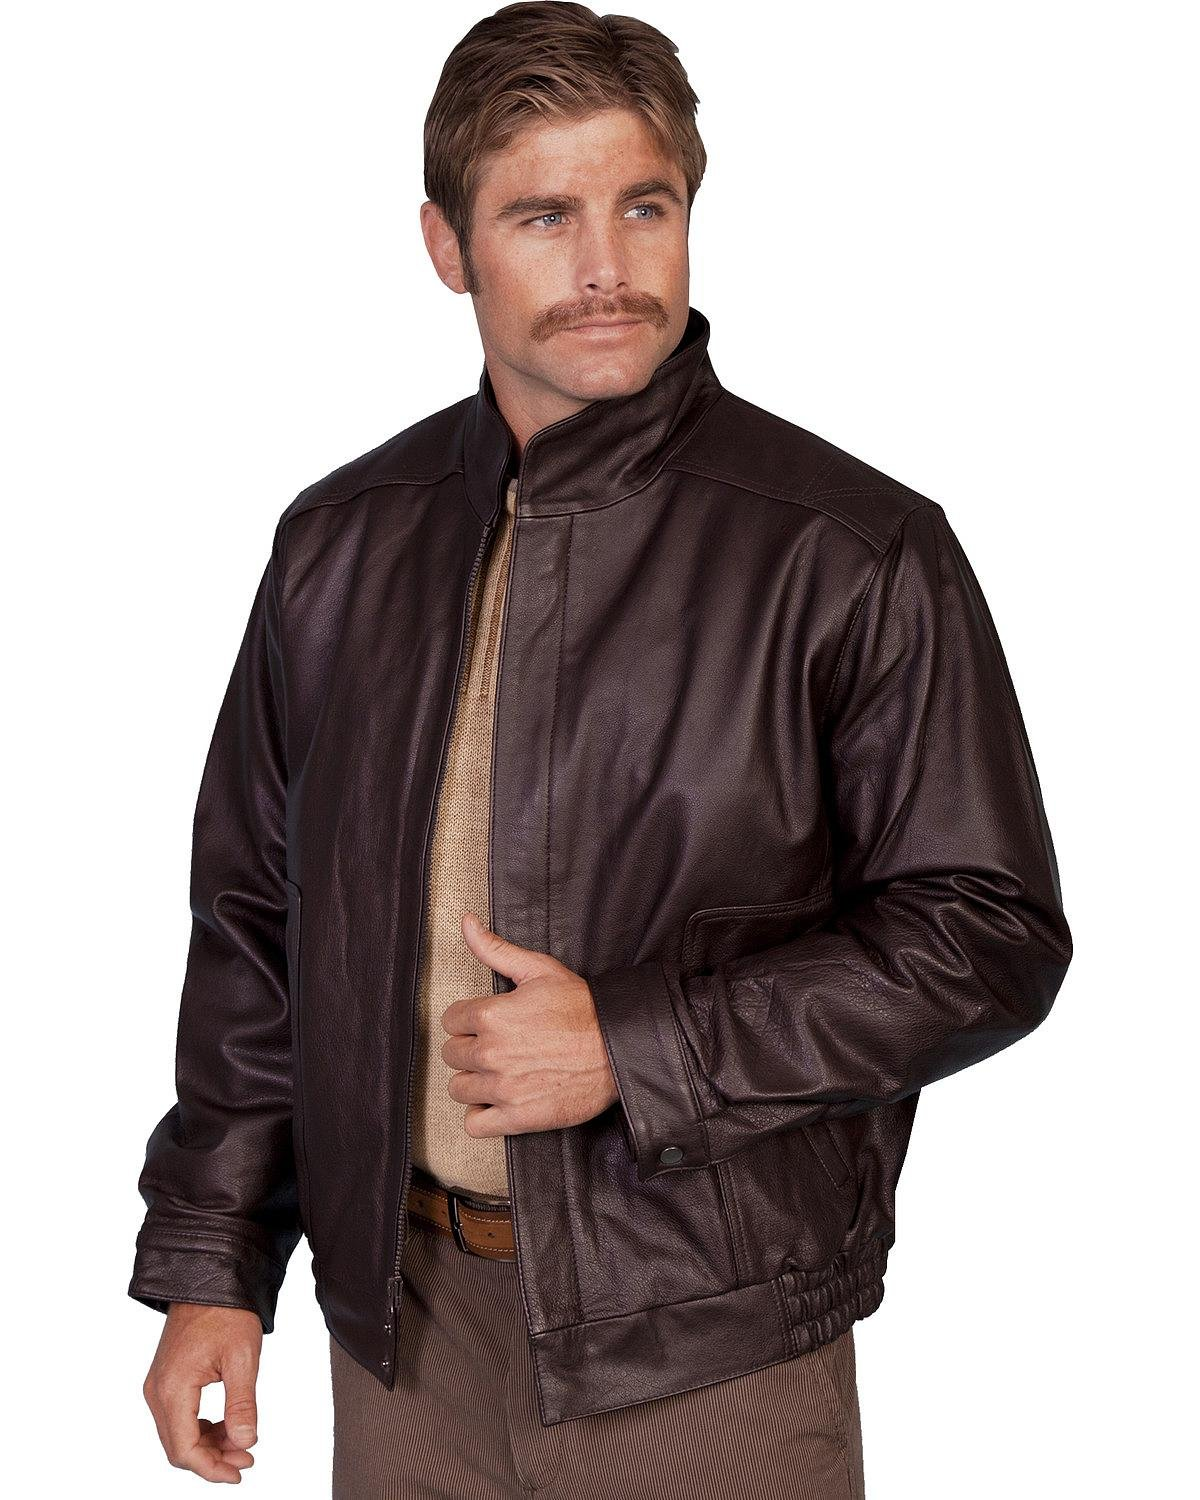 Scully Men's Top Grain Calfskin Leather Jacket Brown 38 R by Scully